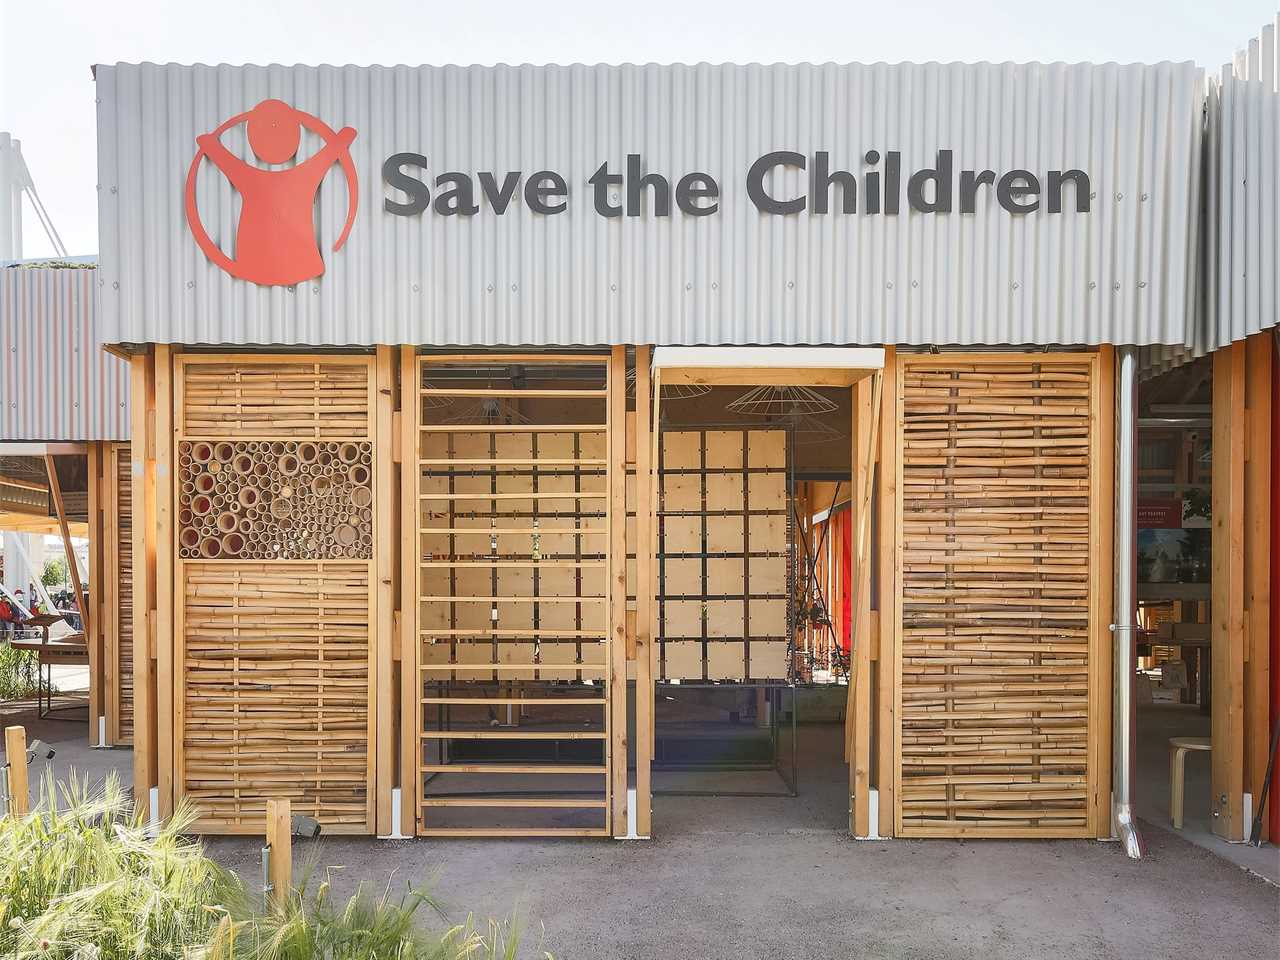 The NGO Save the Children Italy, one of the world's largest independent children's rights …